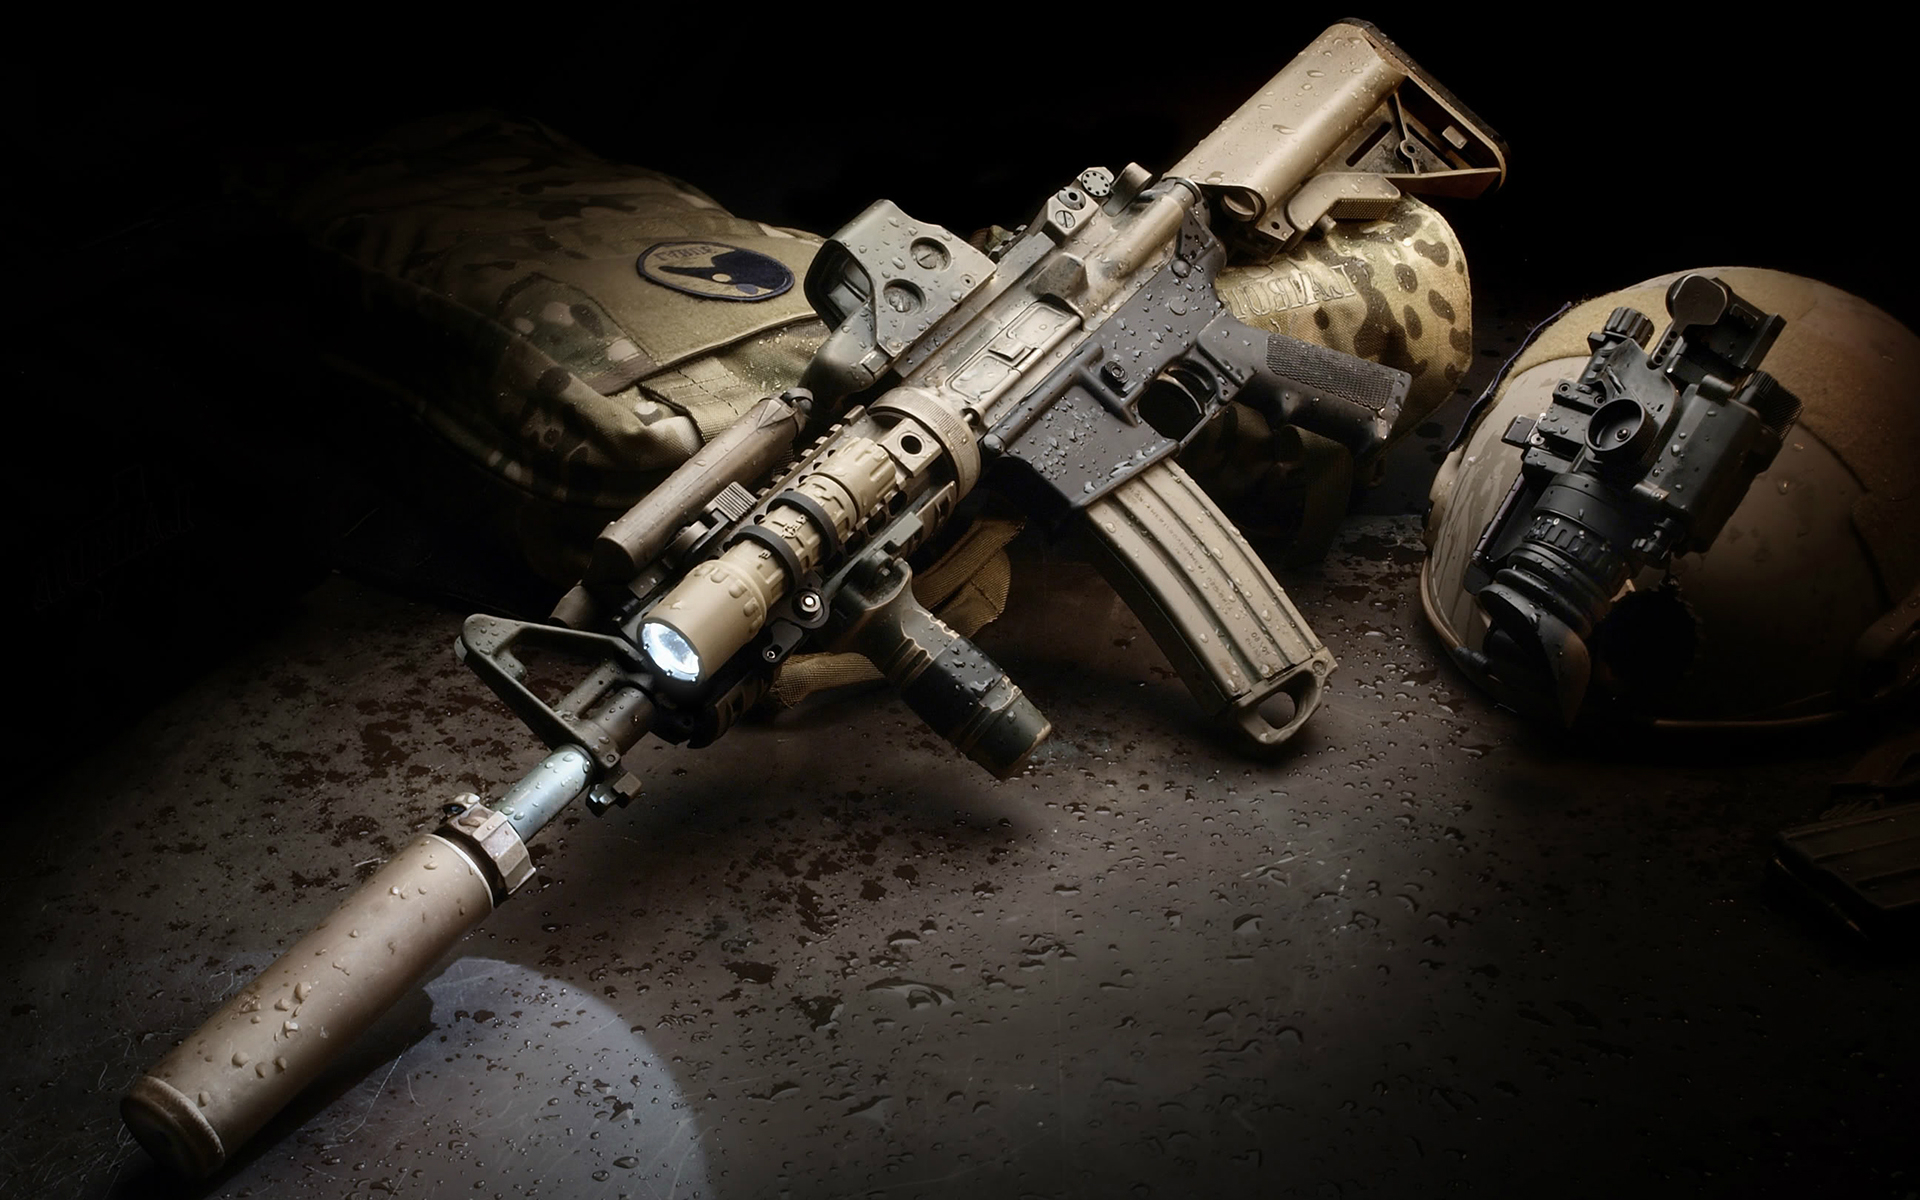 Ar 15 Wallpaper Download Free Beautiful Full Hd: Assault Rifle Desktop Wallpapers